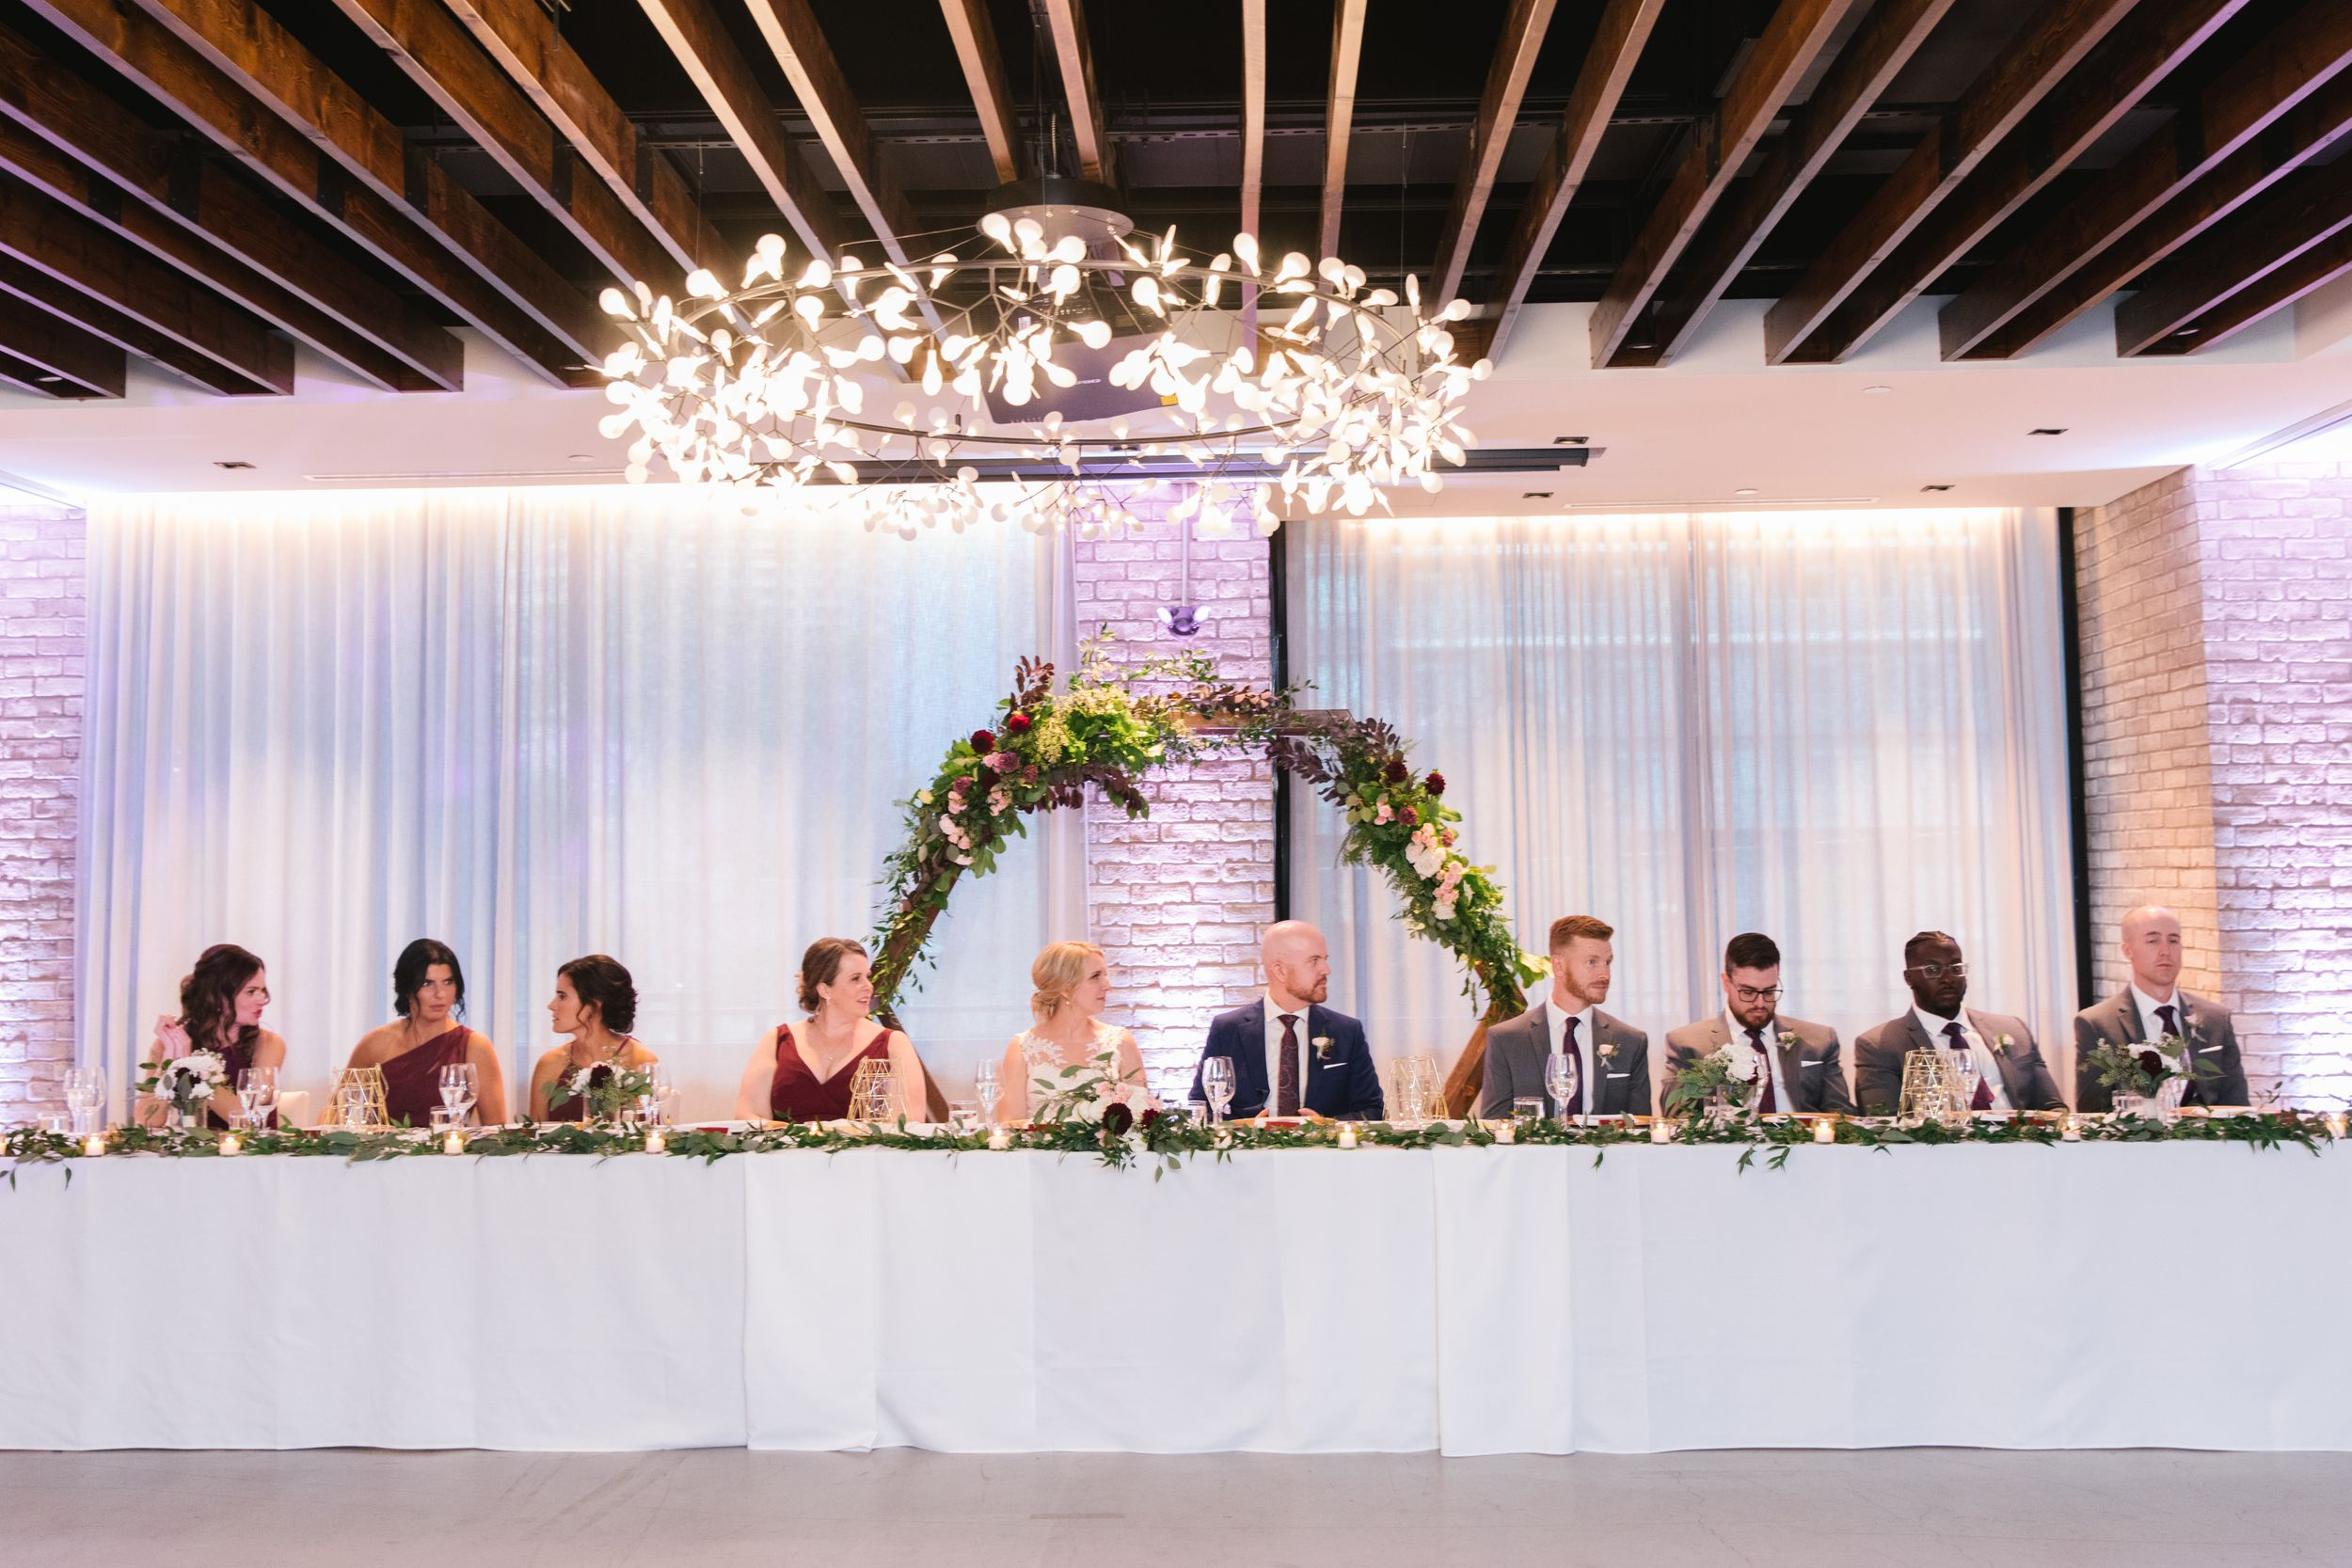 head table with floral arch behind them